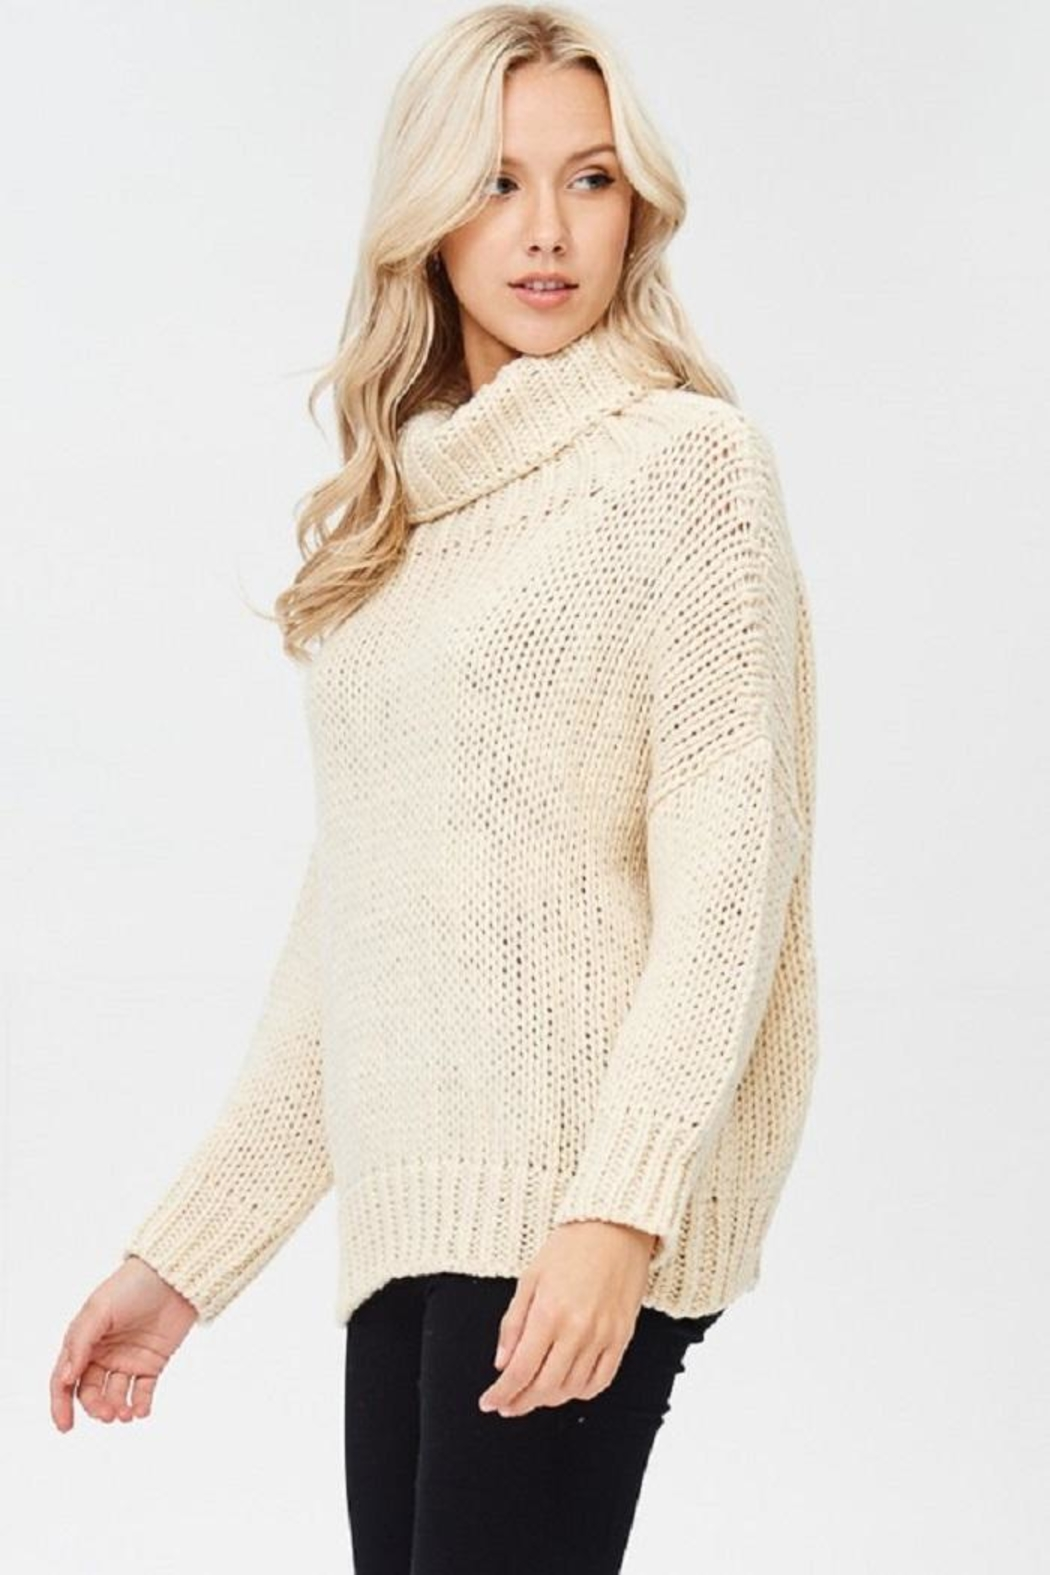 Jolie Cream Chunky Sweater from New York City by Dor L'Dor ...